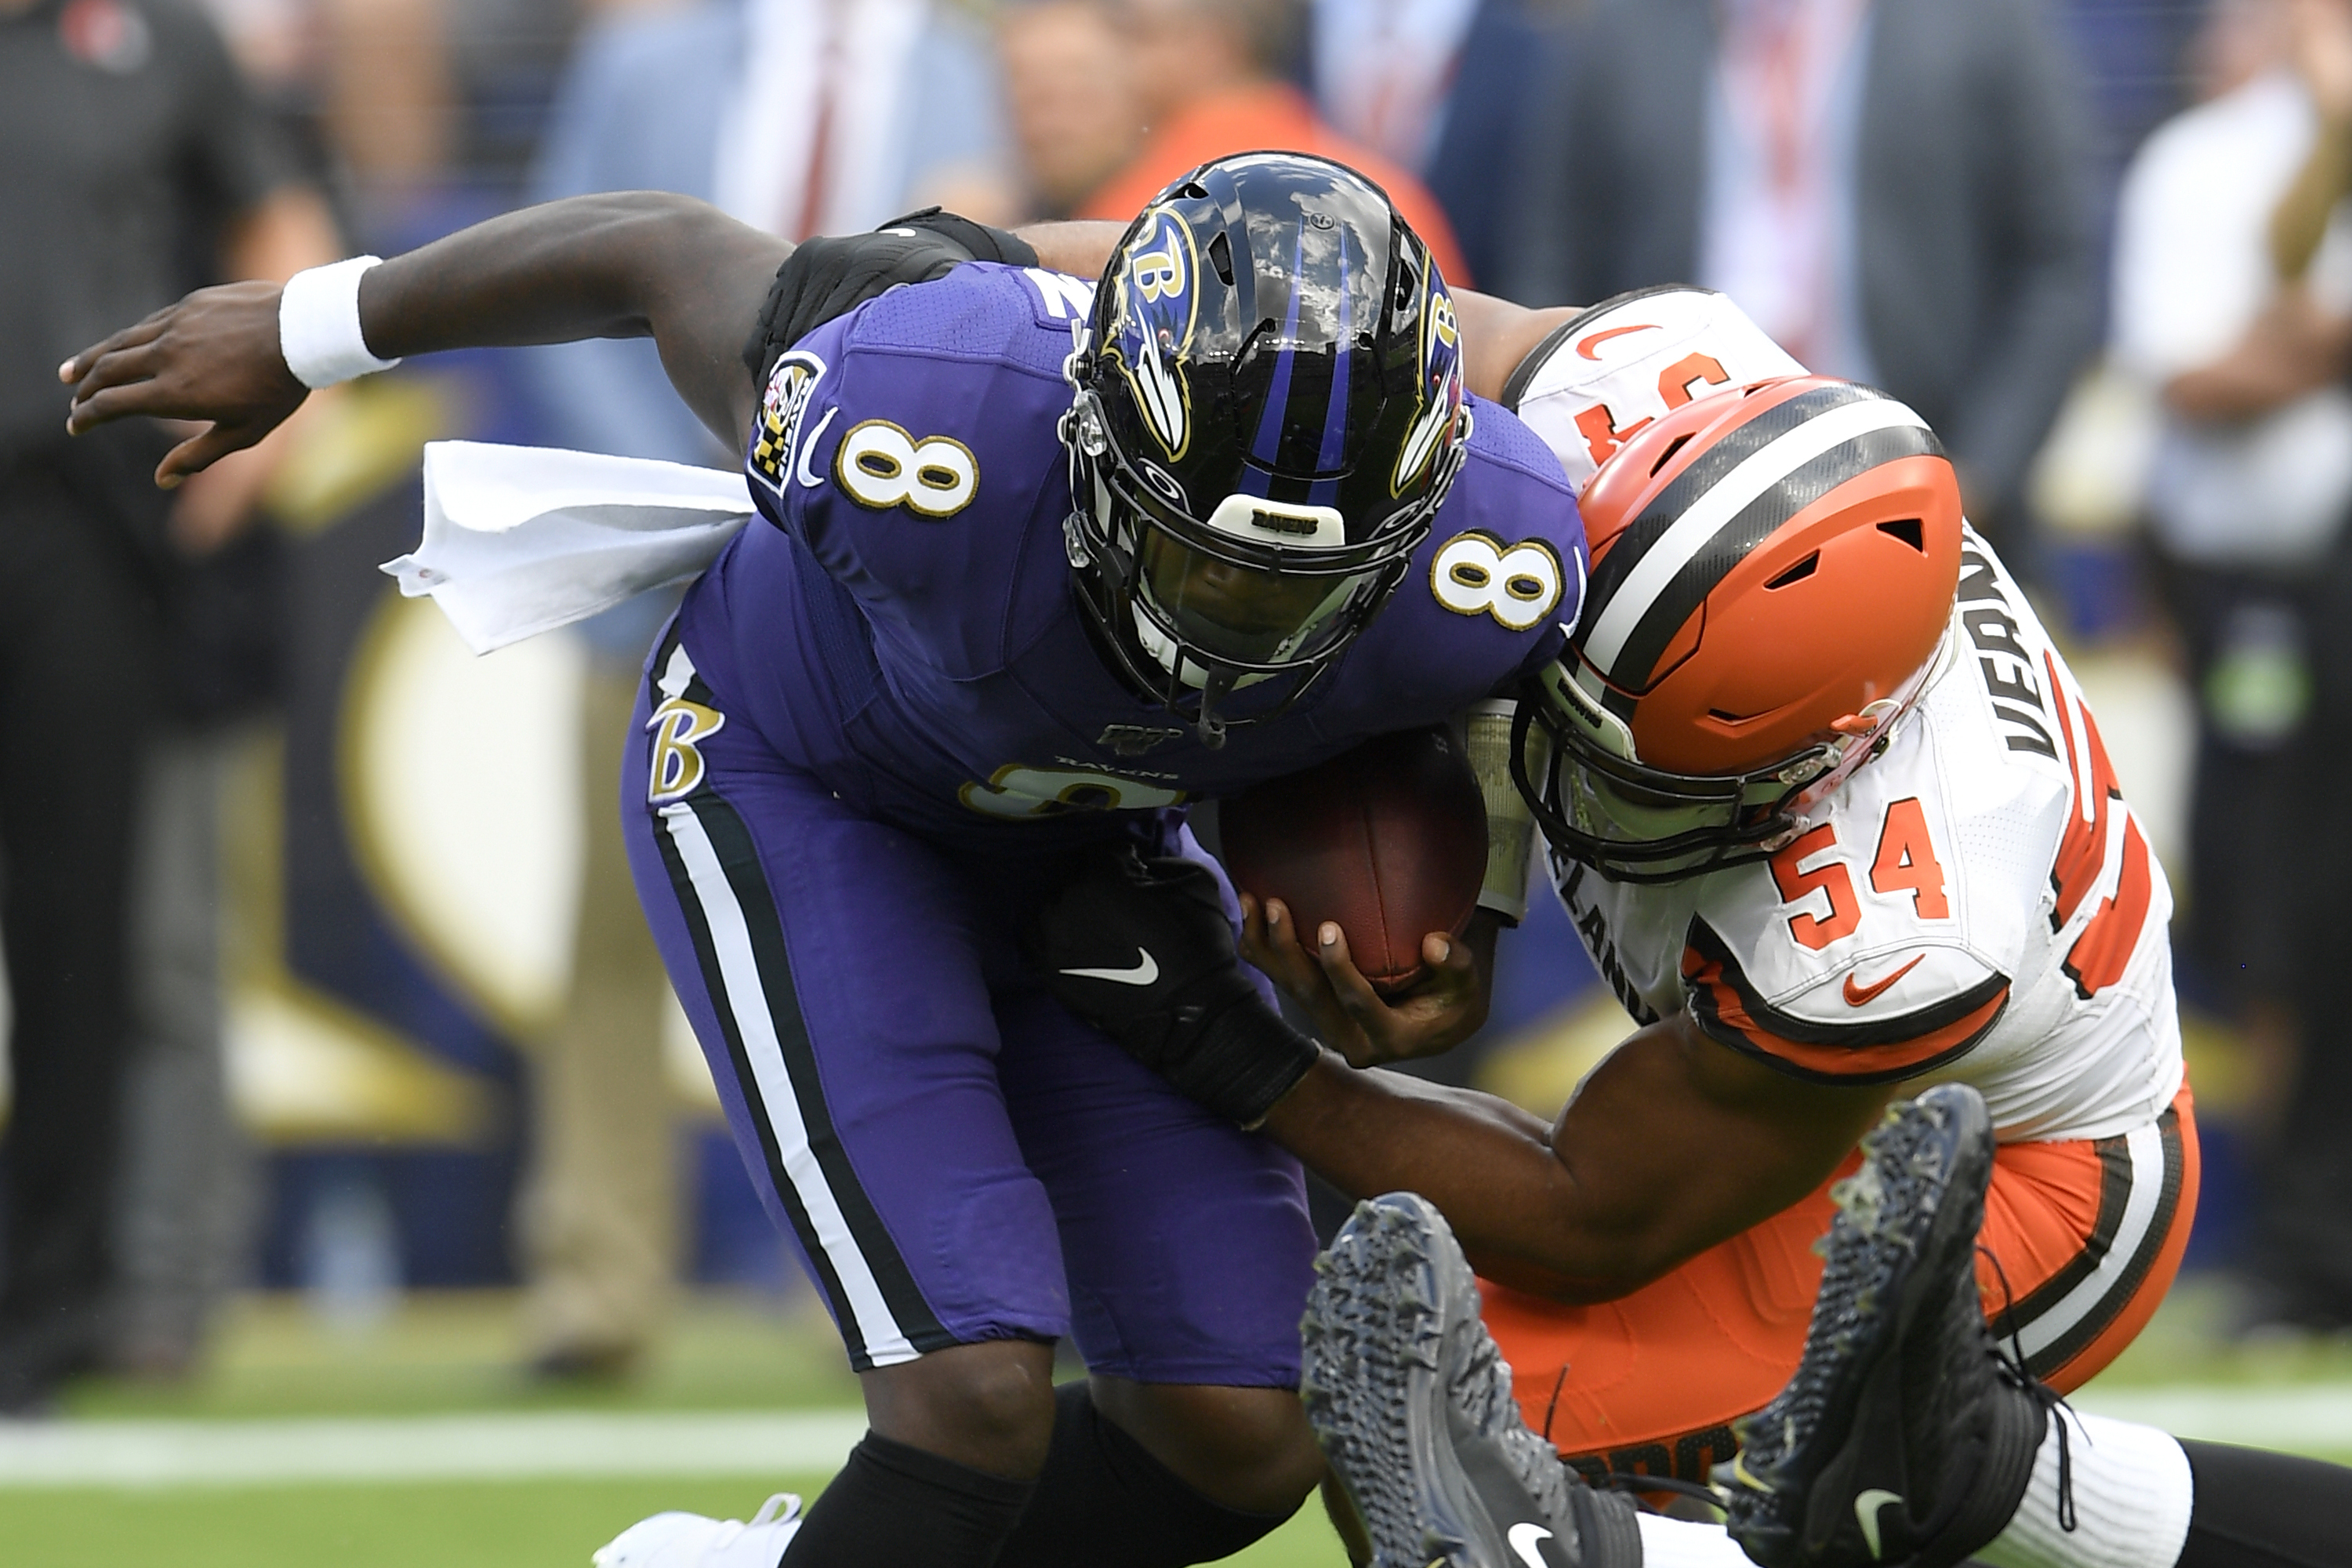 Browns defense lives up to its standard against Ravens: 'This is a defensive team'